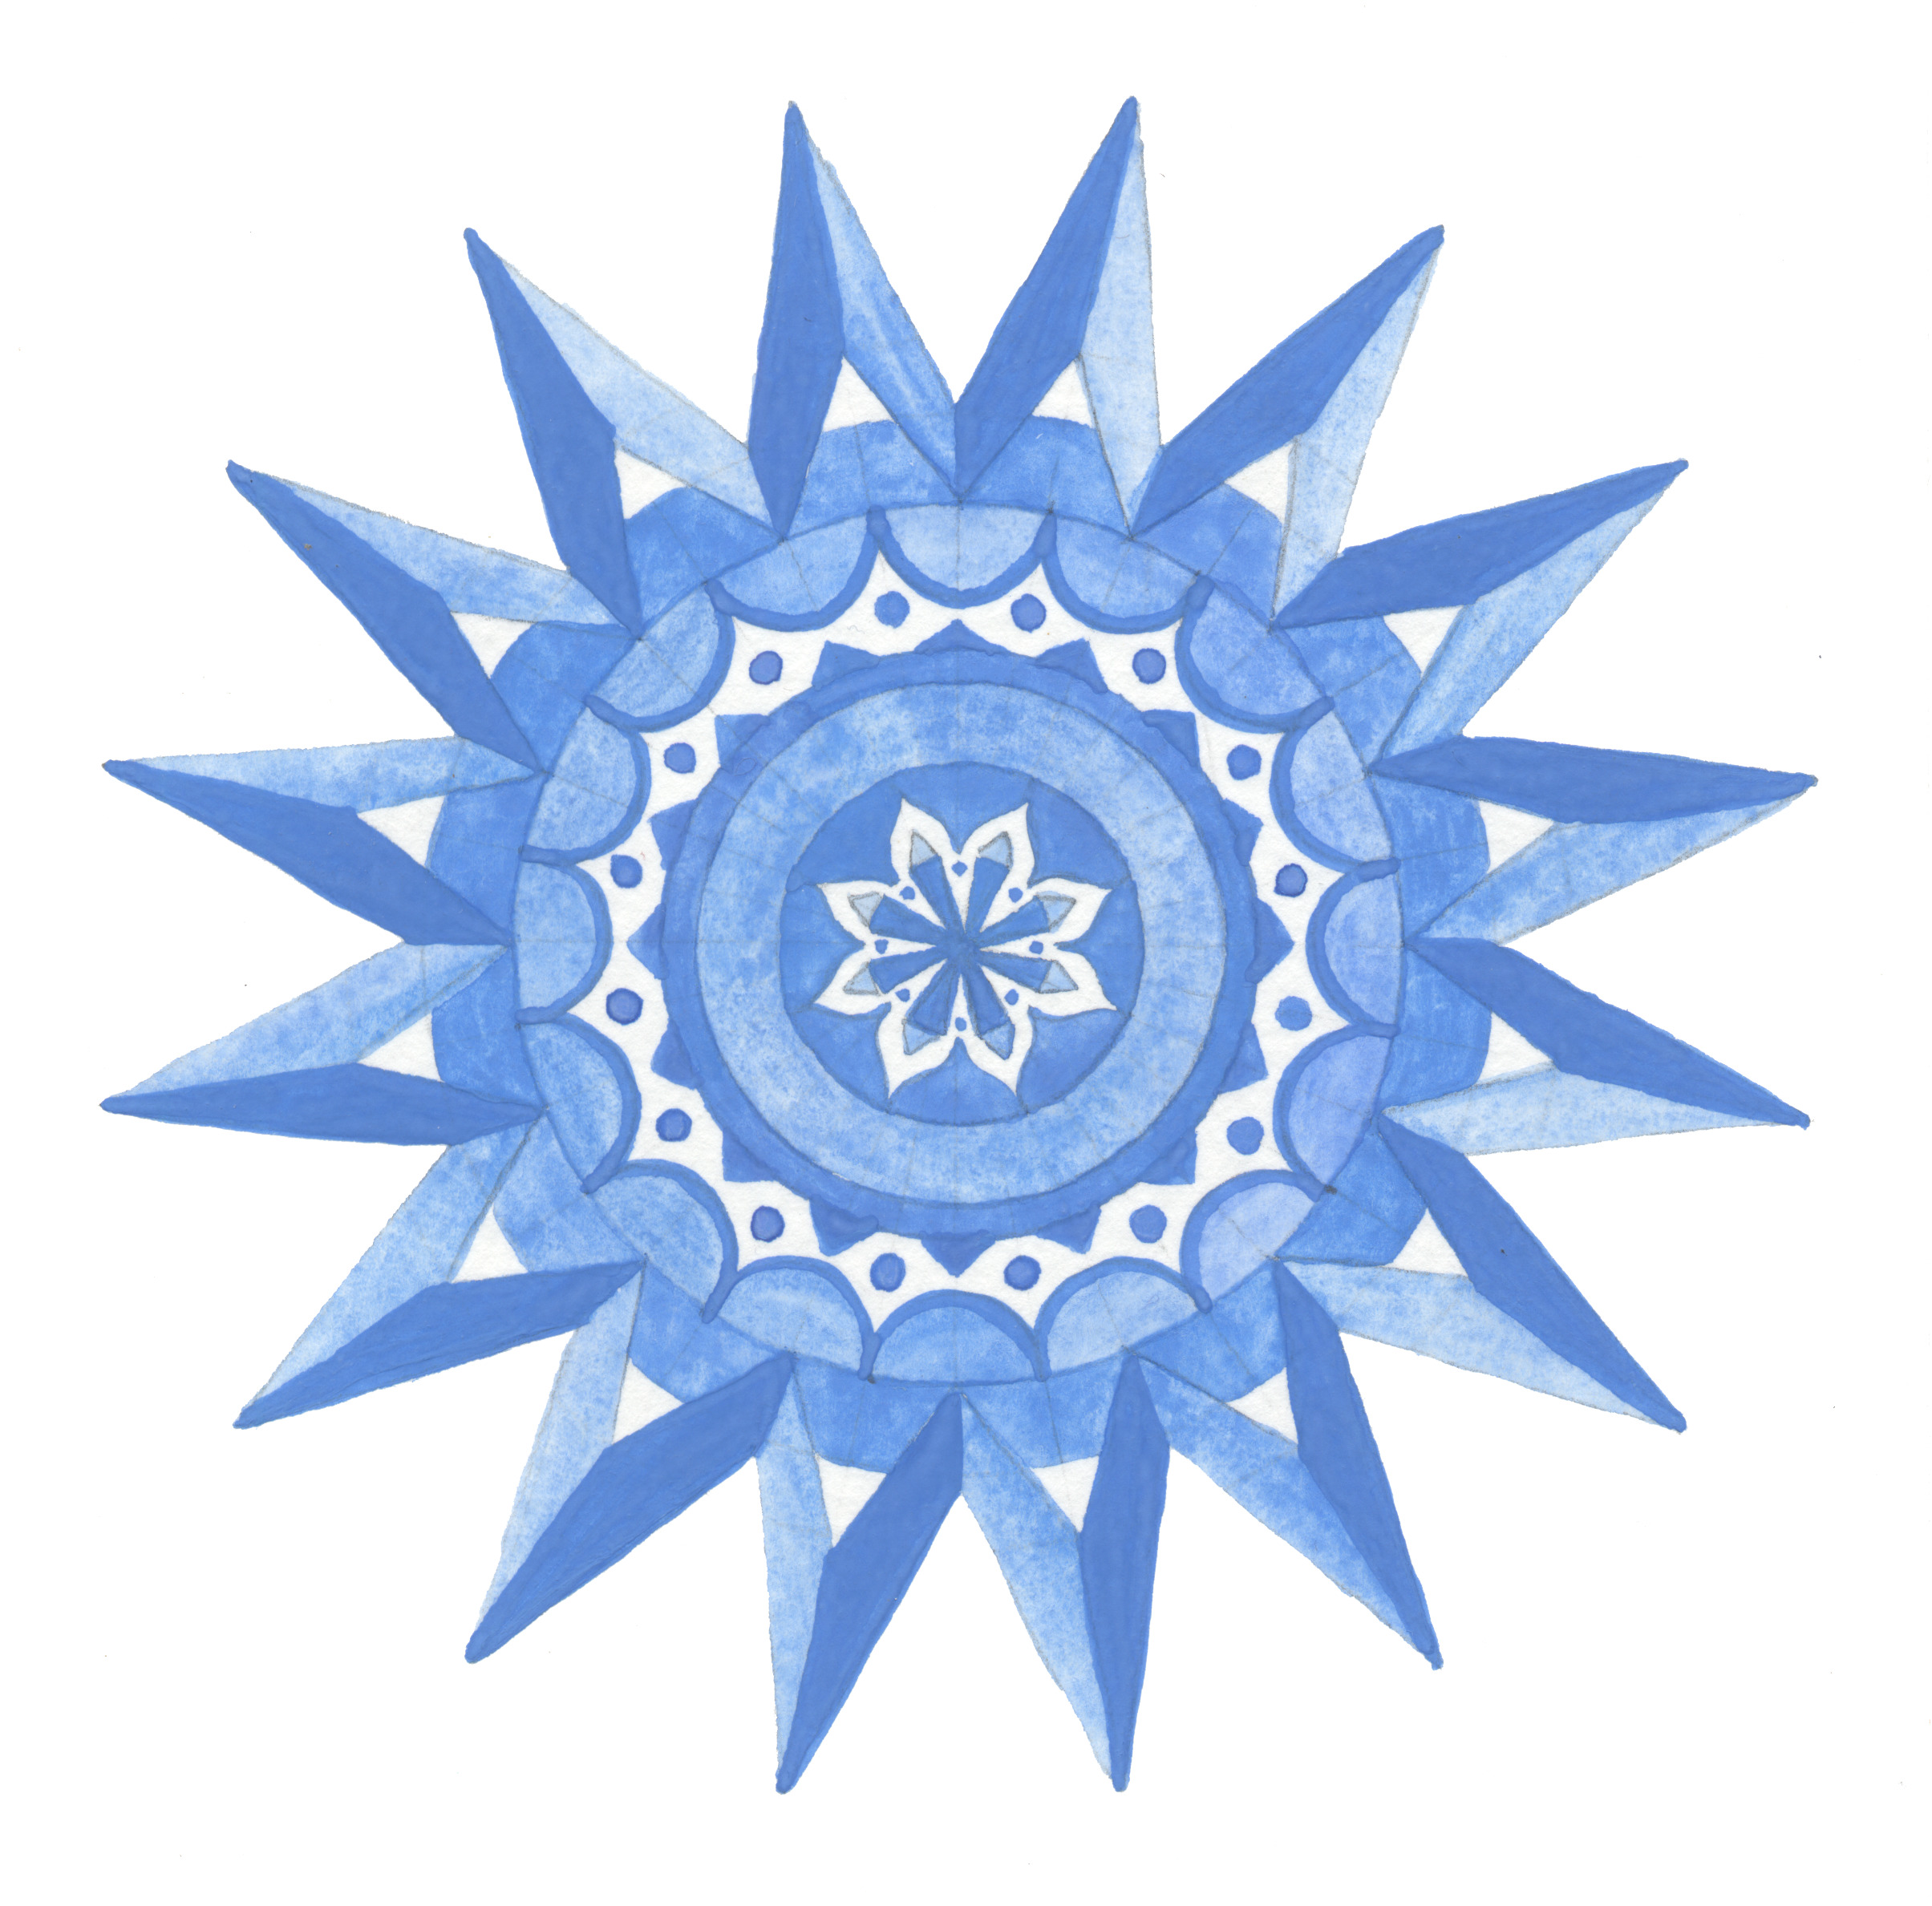 light blue chakra mandala.jpeg